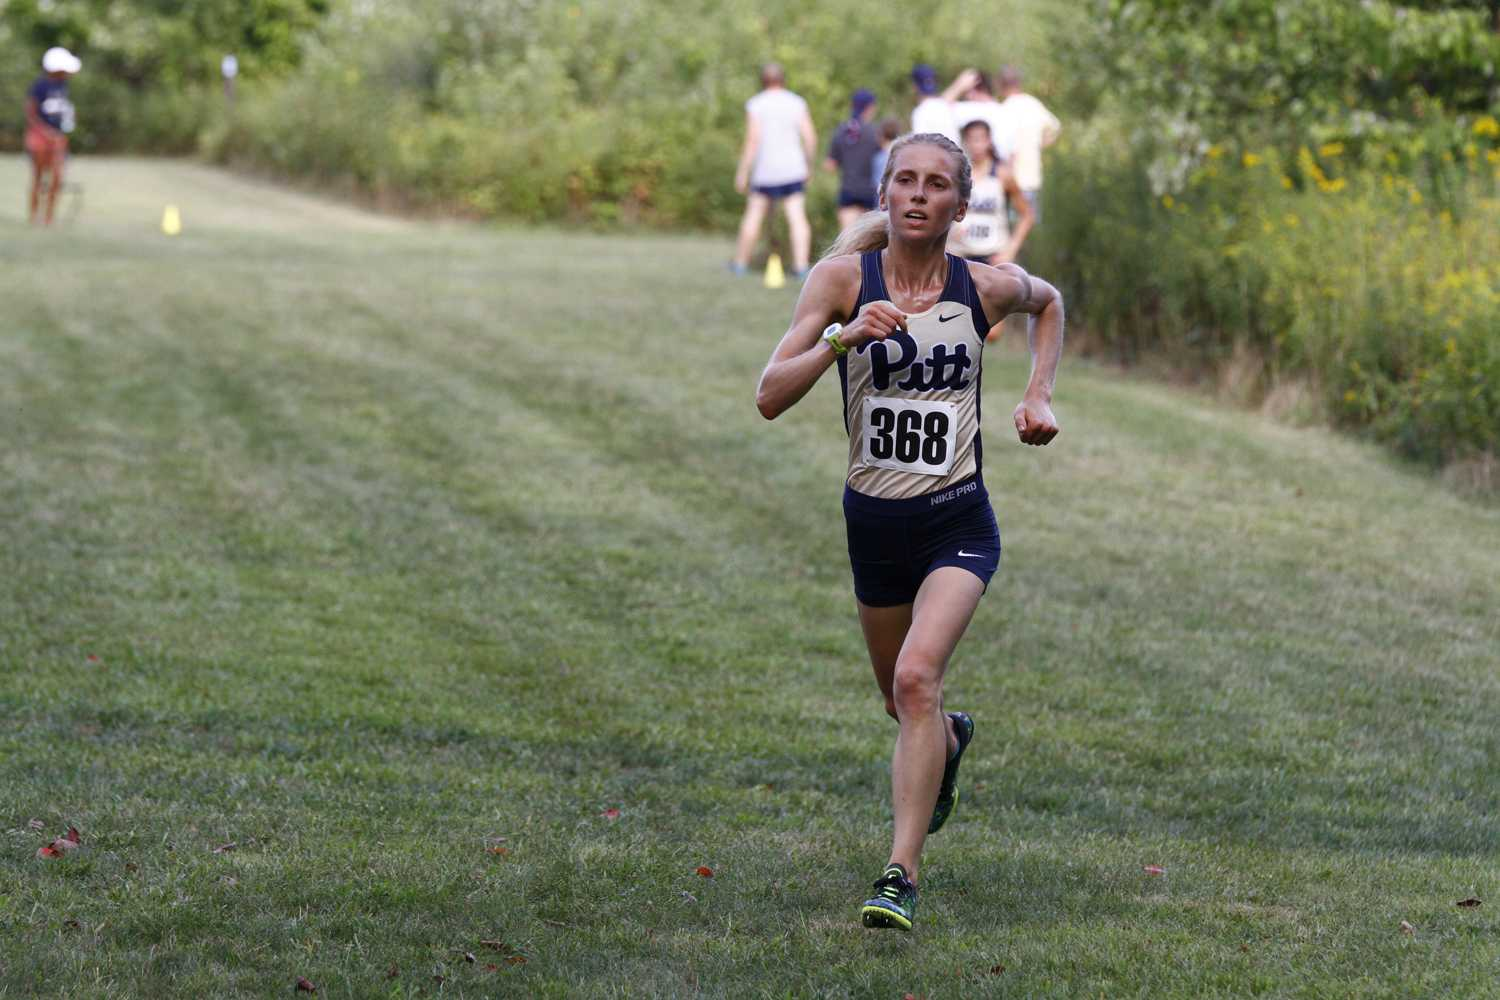 Junior Gillian Schriever didn't run this weekend but is expected to lead the women's cross country team this fall. (Photo courtesy of Pitt Athletics)